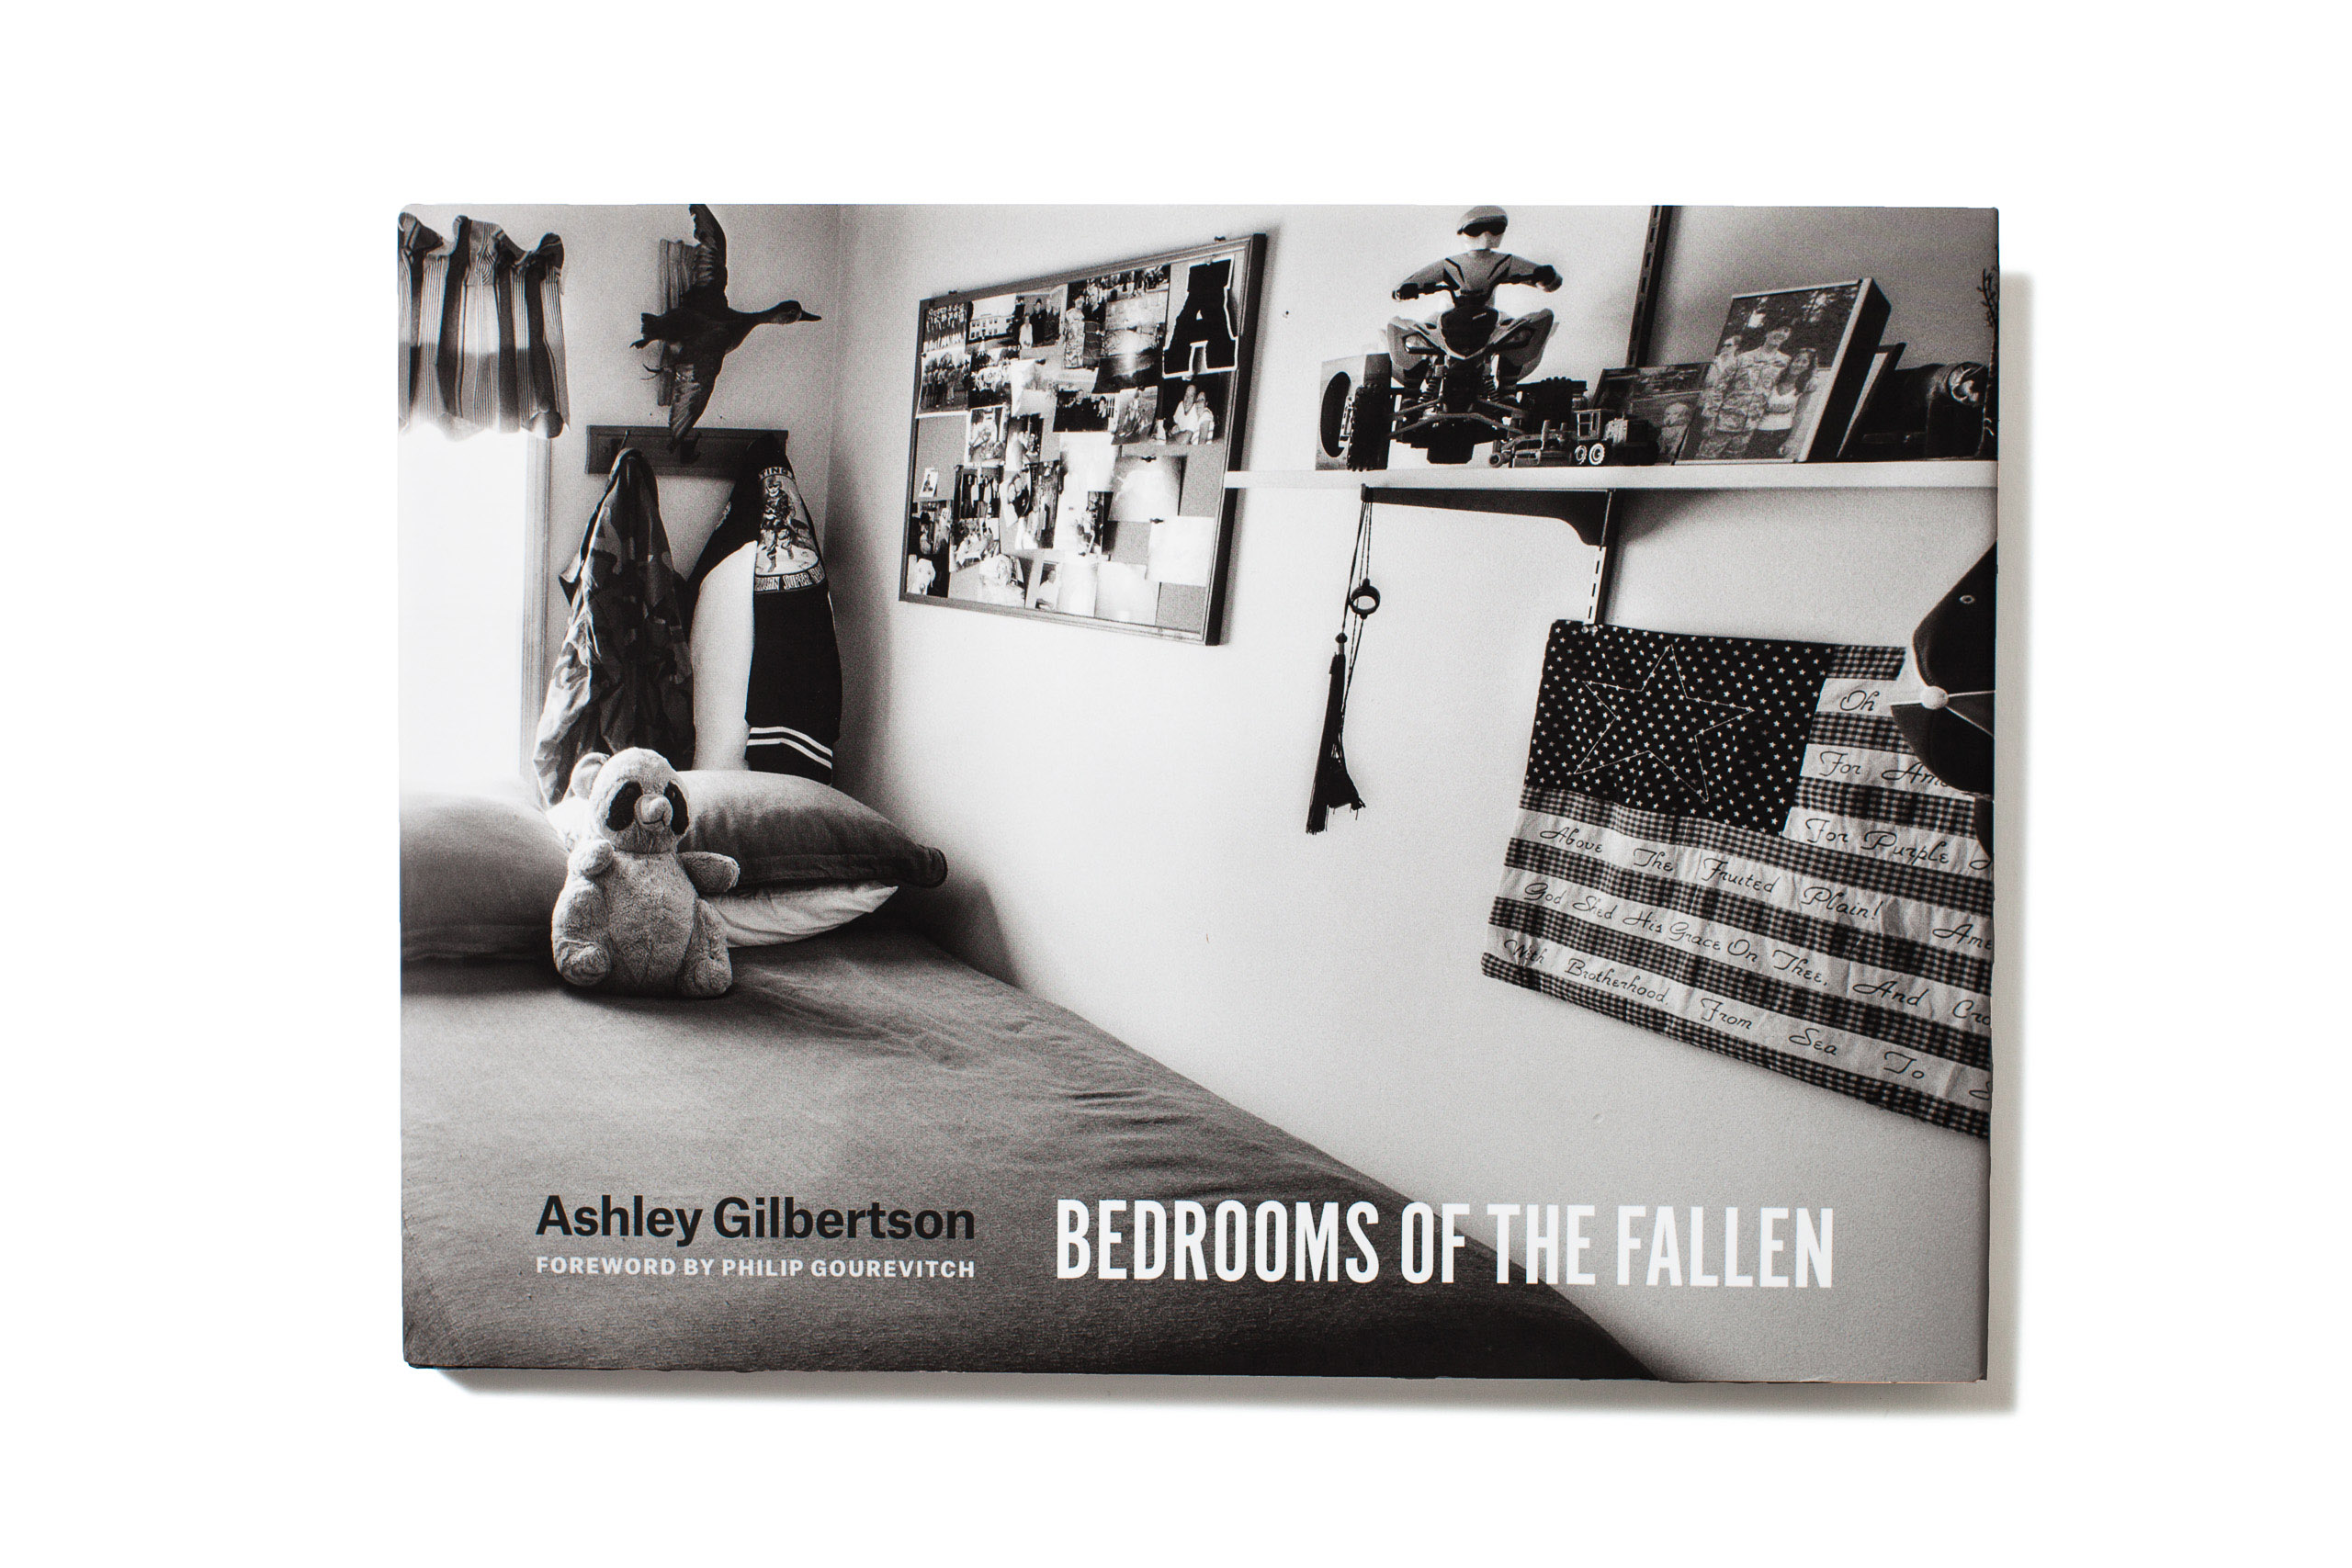 """<a href=""""http://www.press.uchicago.edu/ucp/books/book/chicago/B/bo16393769.html""""><i><b>Bedrooms of the Fallen</a></i></b> The University of Chicago Press, selected by By Josh Raab, Freelance Photo Editor, <i>TIME.com</i>"""